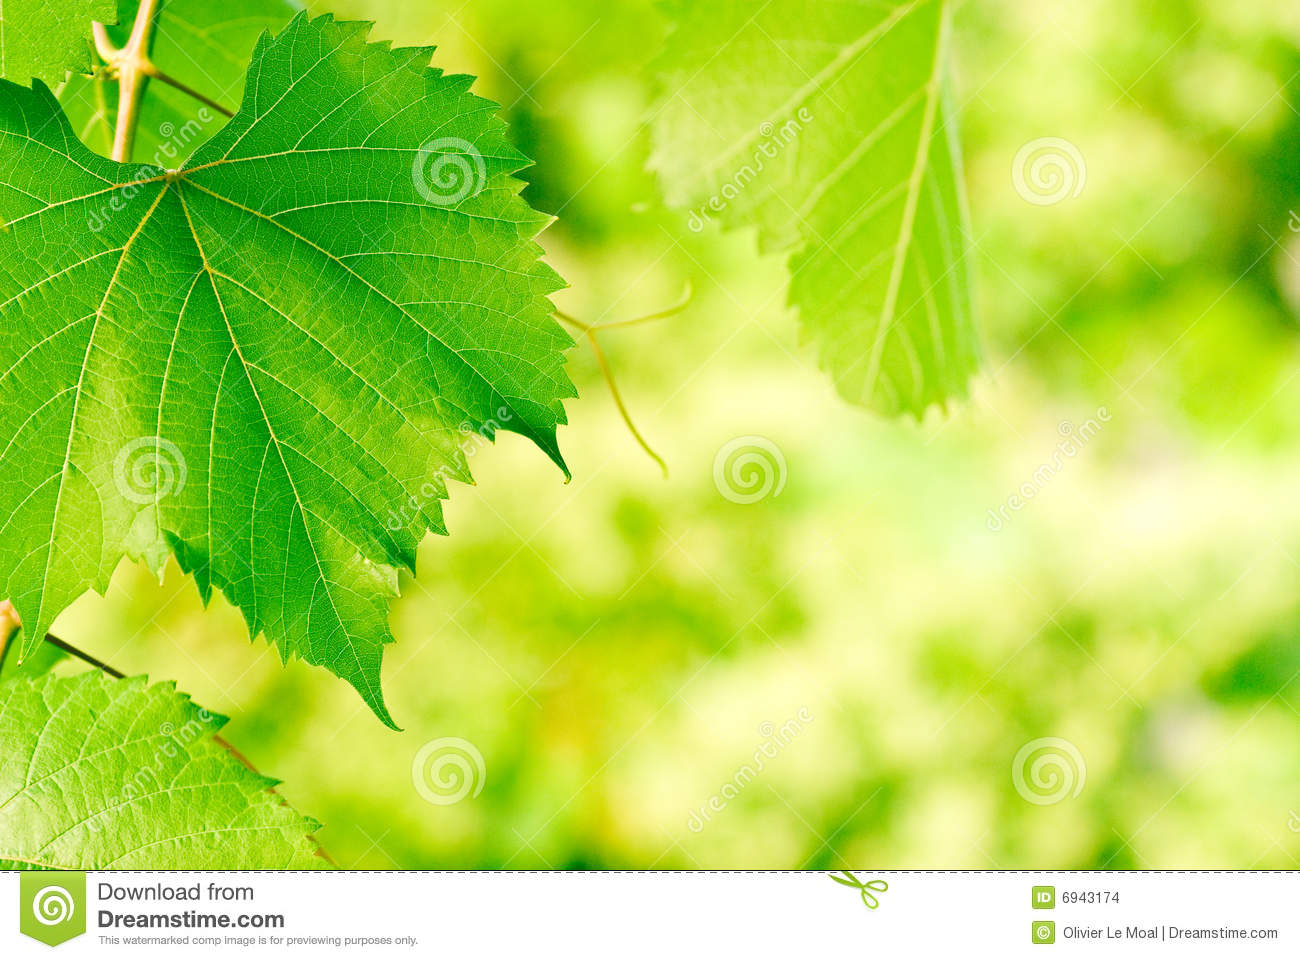 Green leaves - Environment